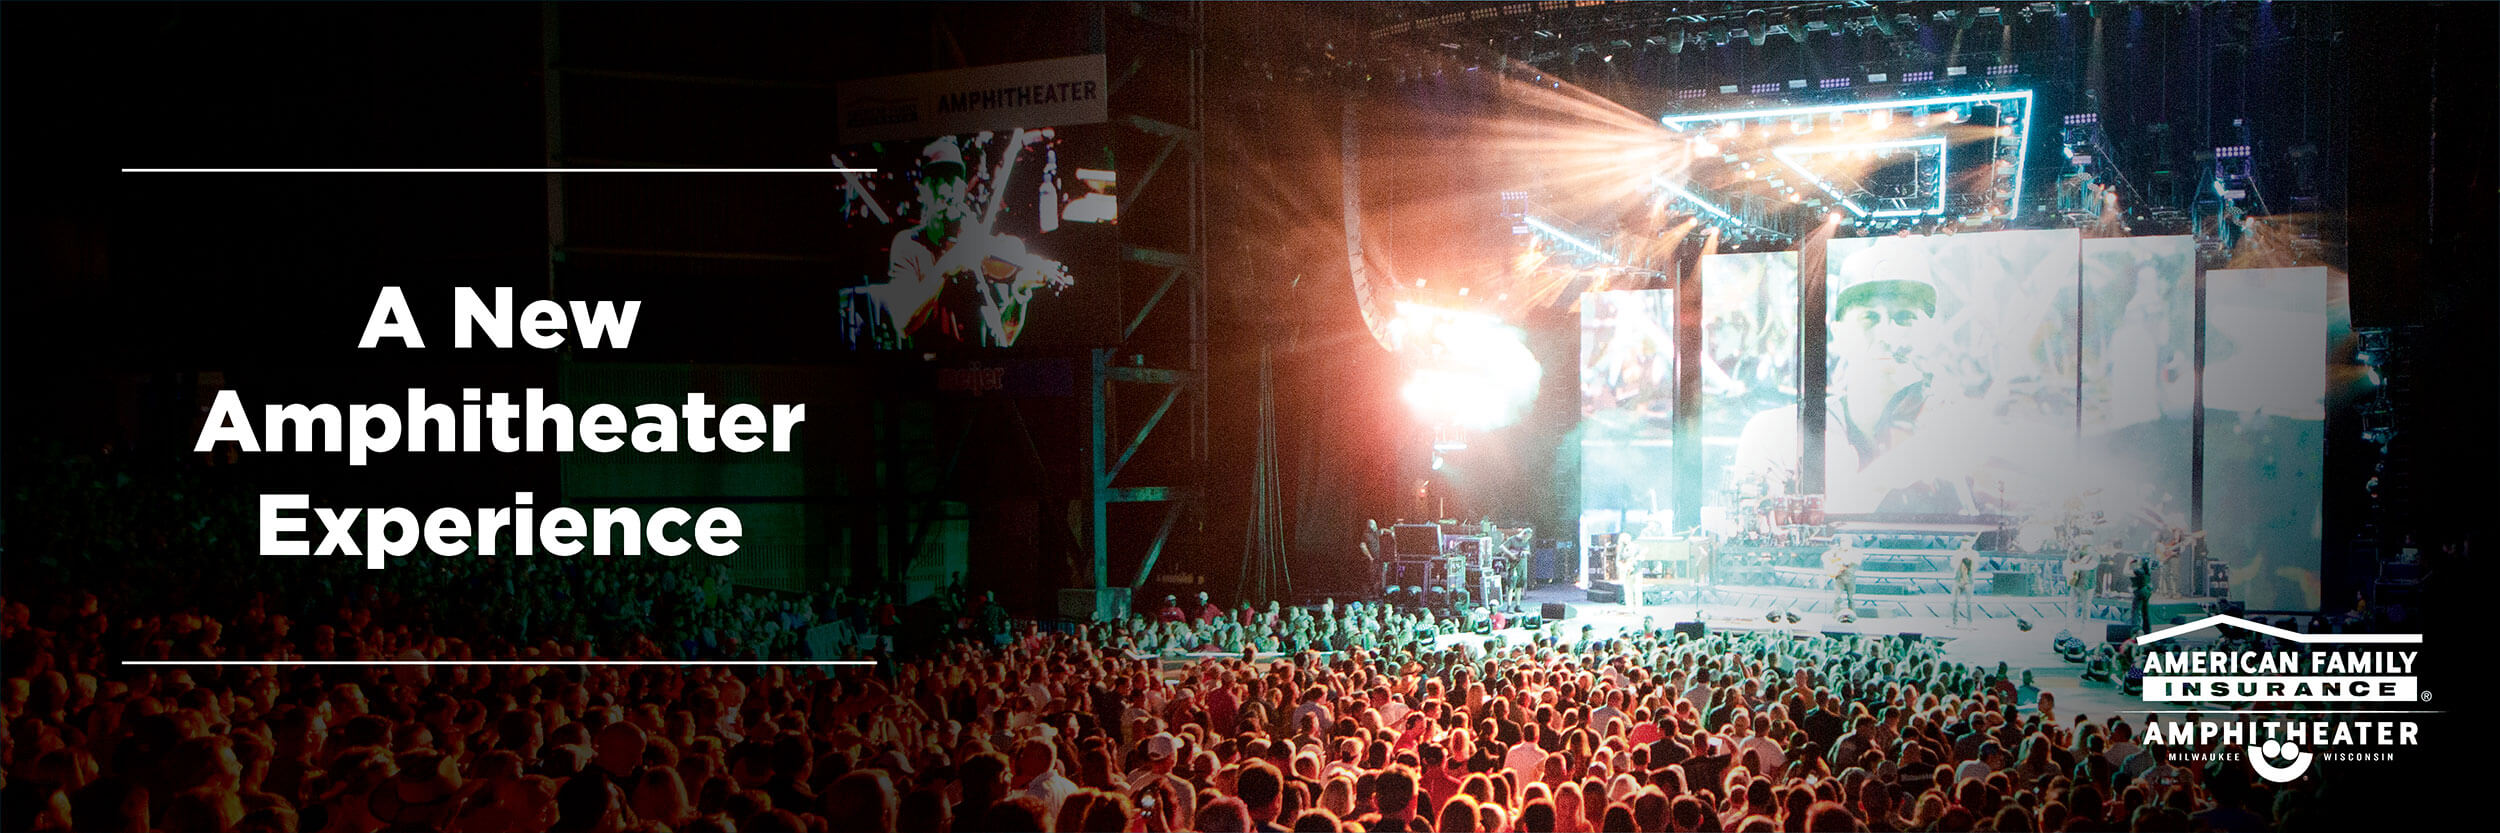 Image of a concert in the American Family Amphitheater